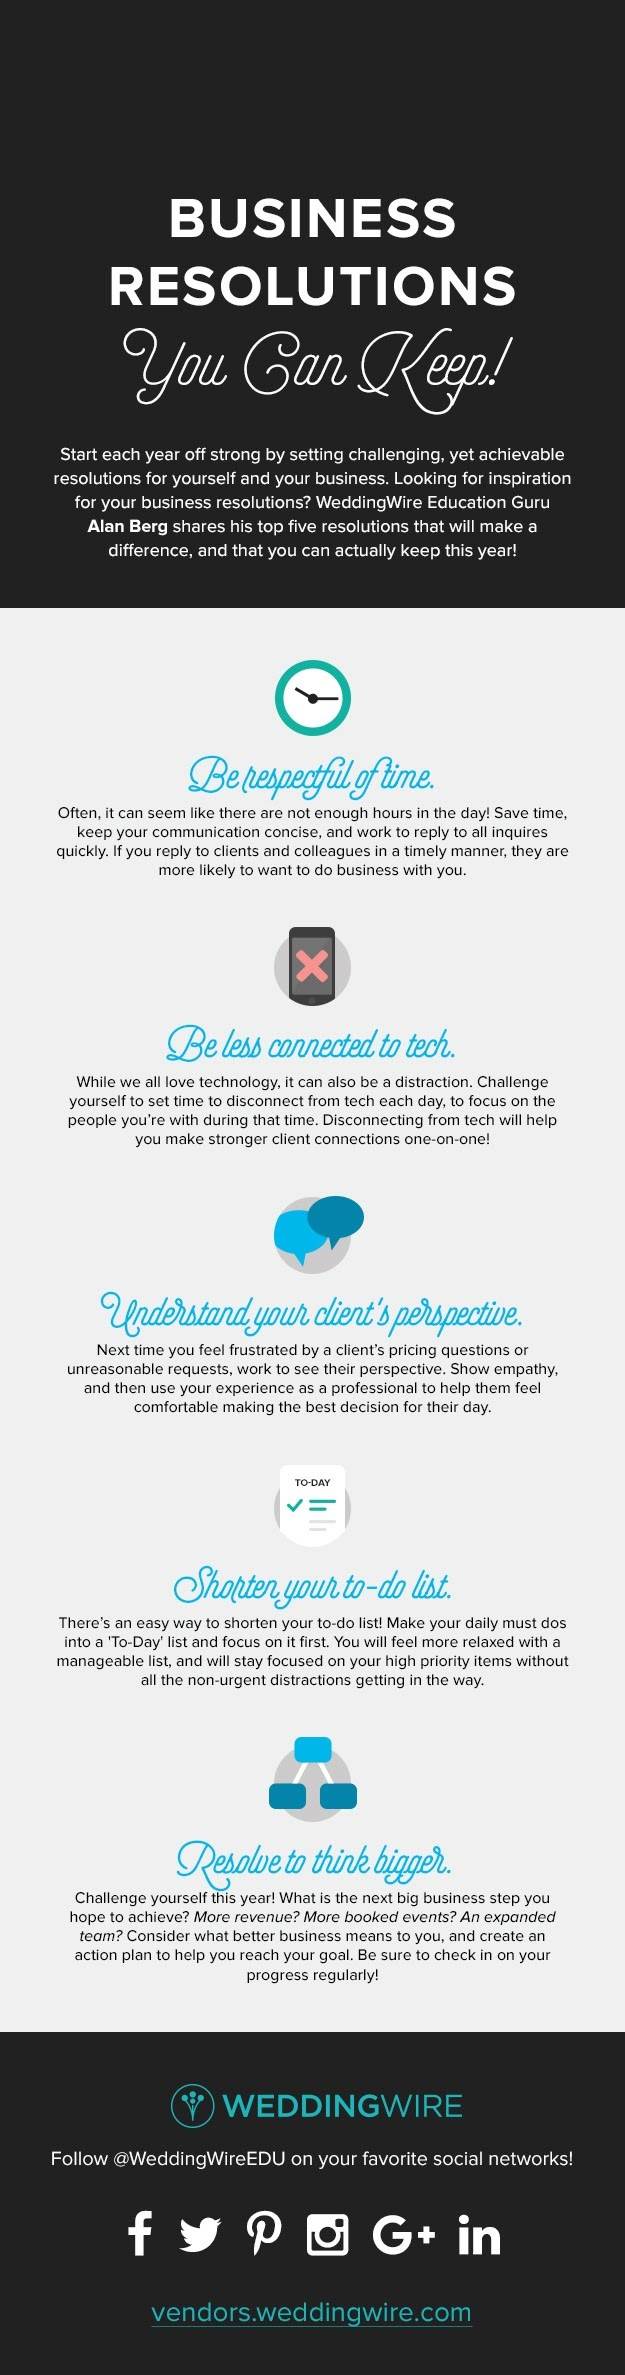 Five Business Resolutions That You Can Keep - #infographic